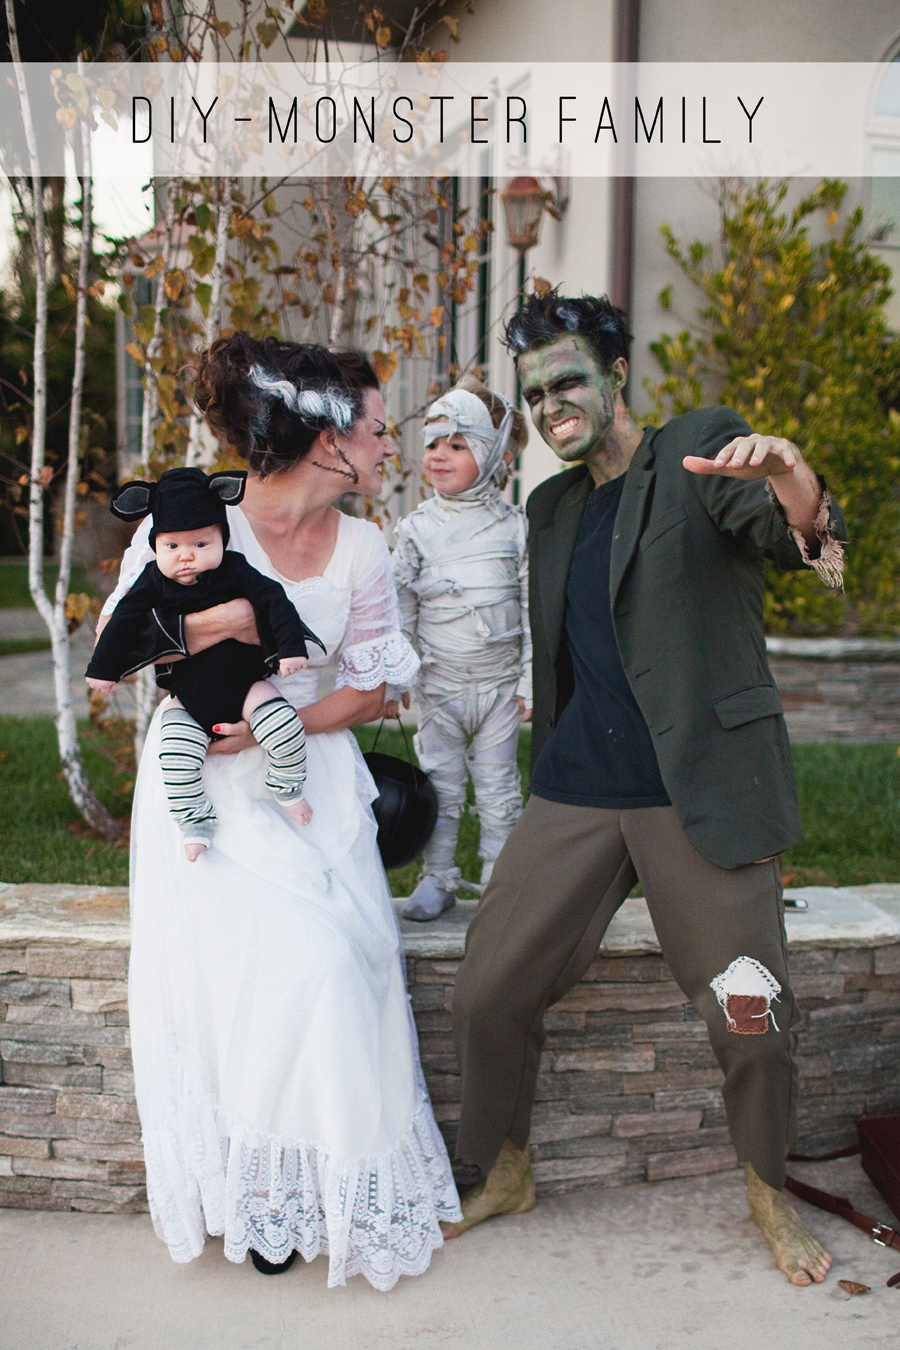 I Kind Of Love And Get Way Too Excited Each Year Planning Out Our Family Costumes Dread The Day My Boys Are Cool To Dress Up With Us